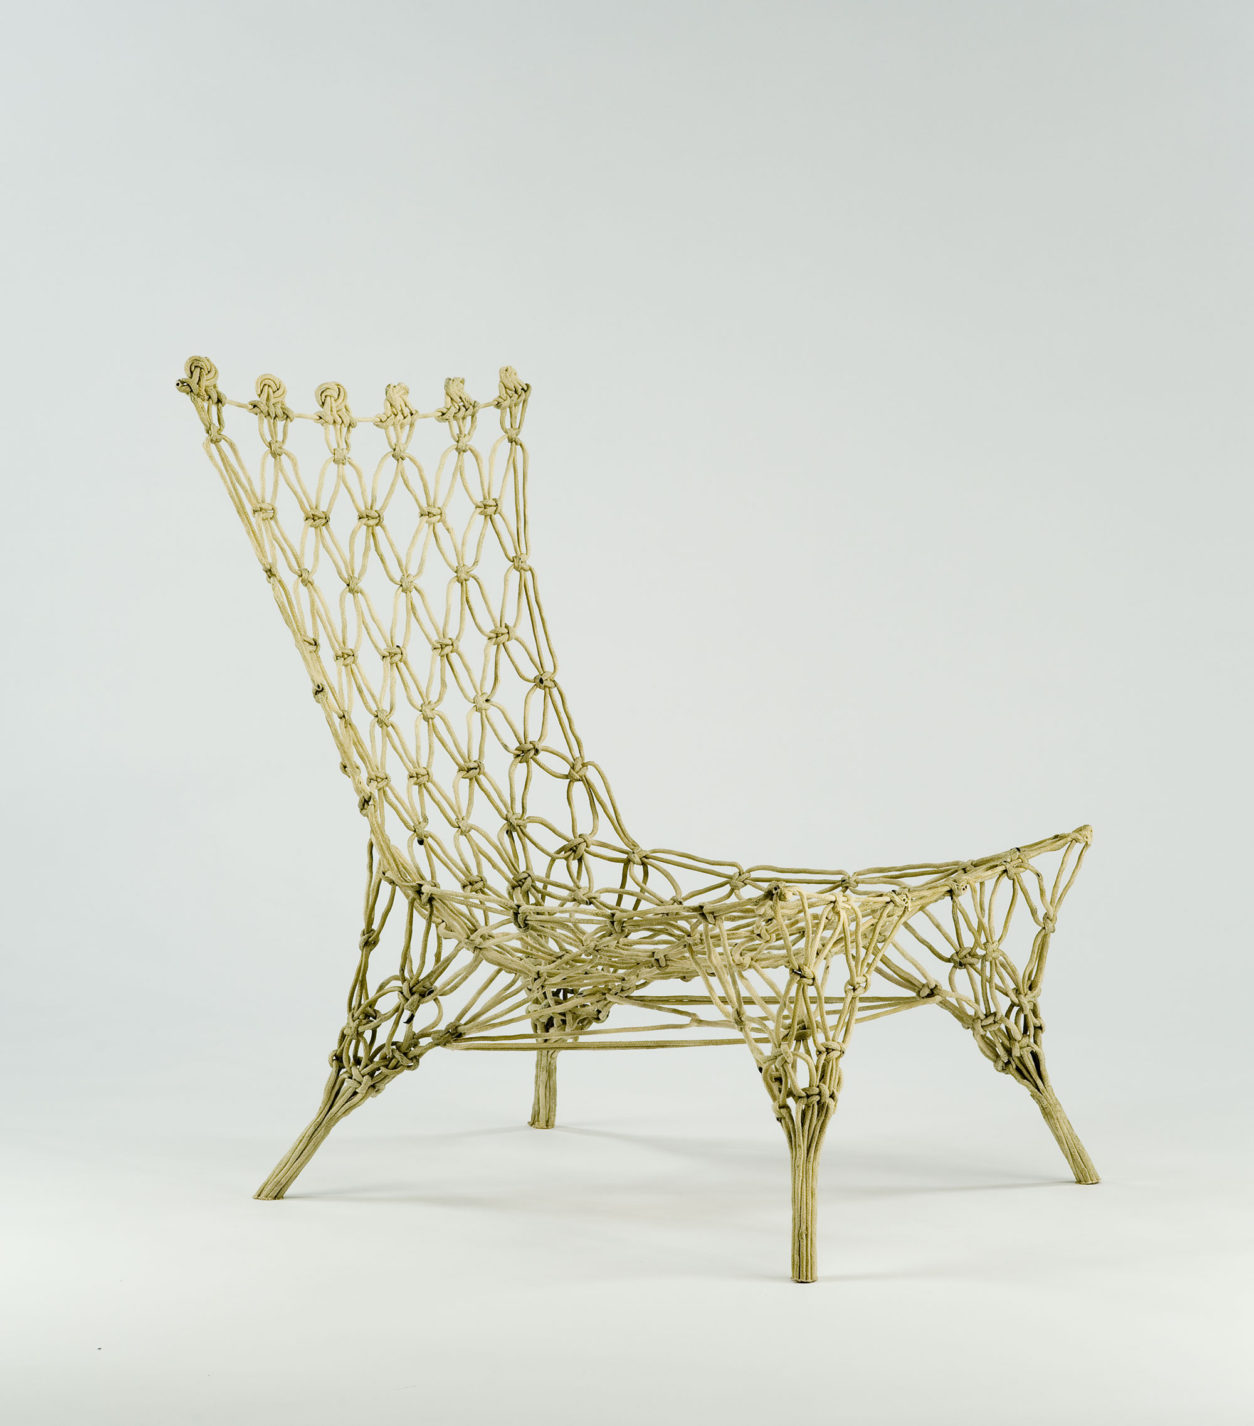 Chair formed of stiffened knotted rope, similar to a macramé net frozen in space.